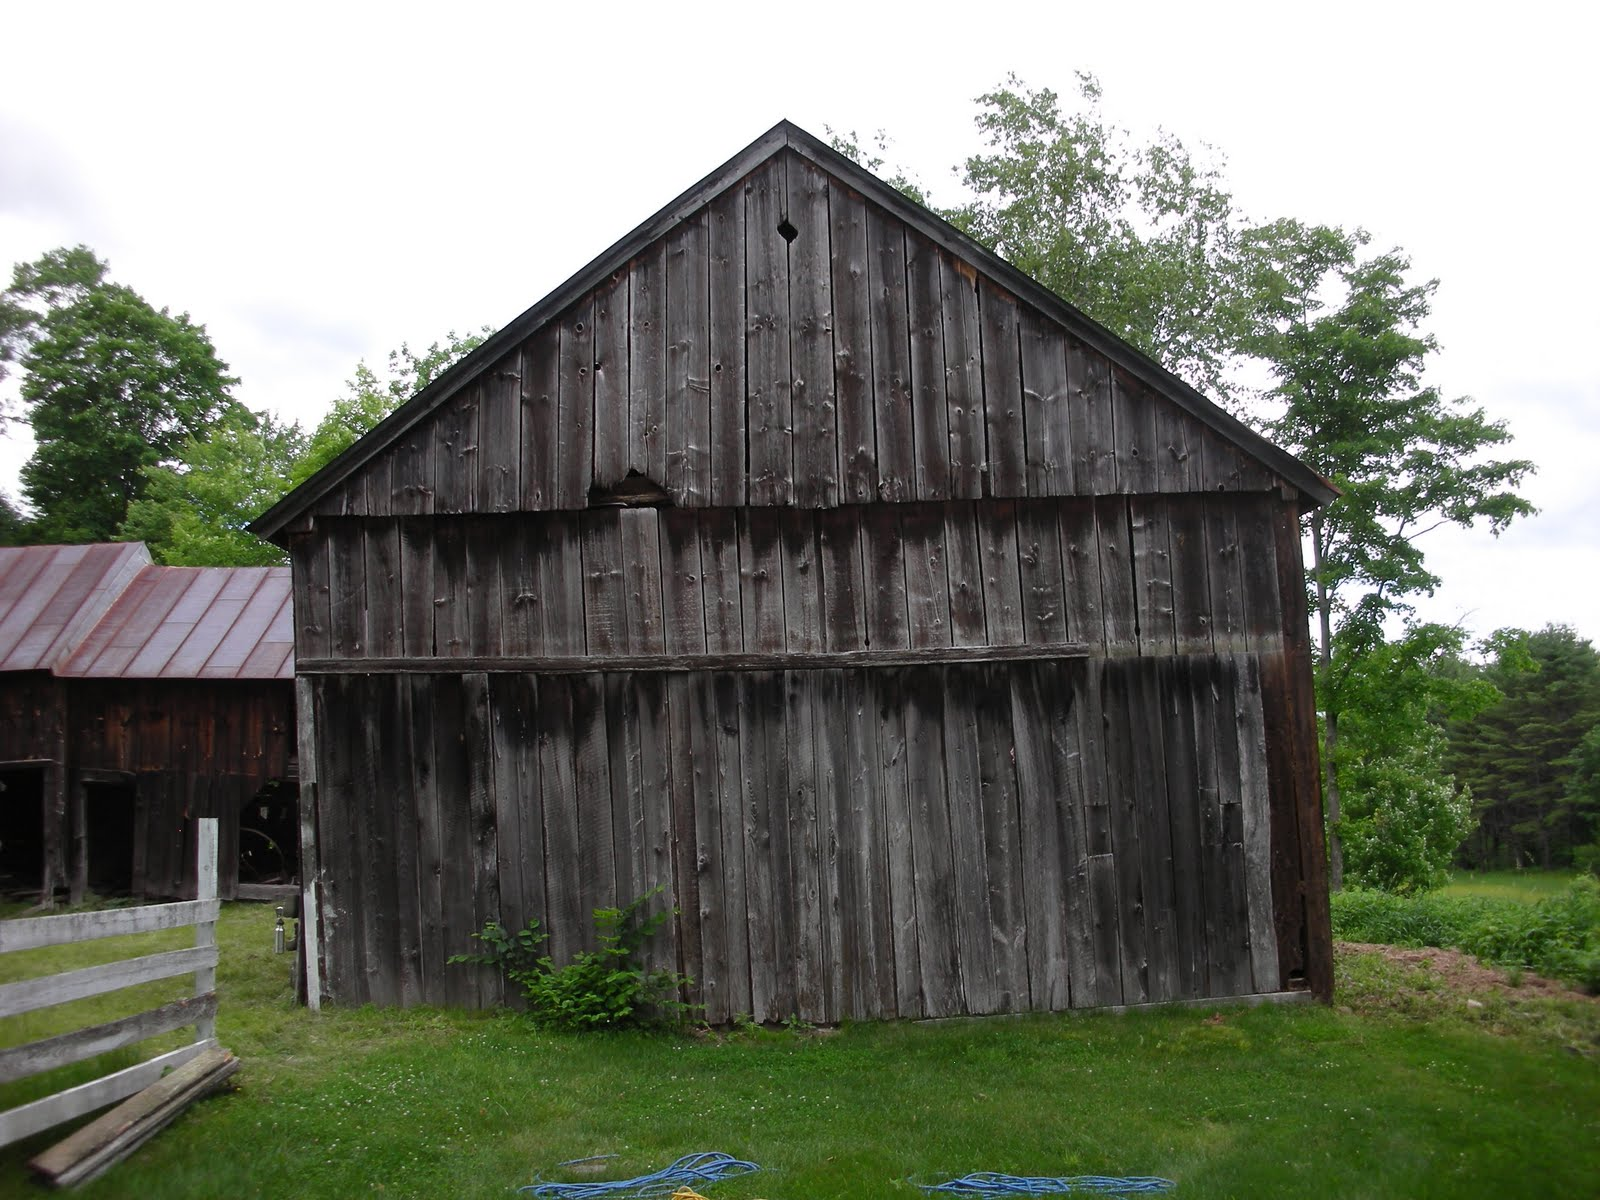 This gable wall shows the difference in elevation between the two eave walls.